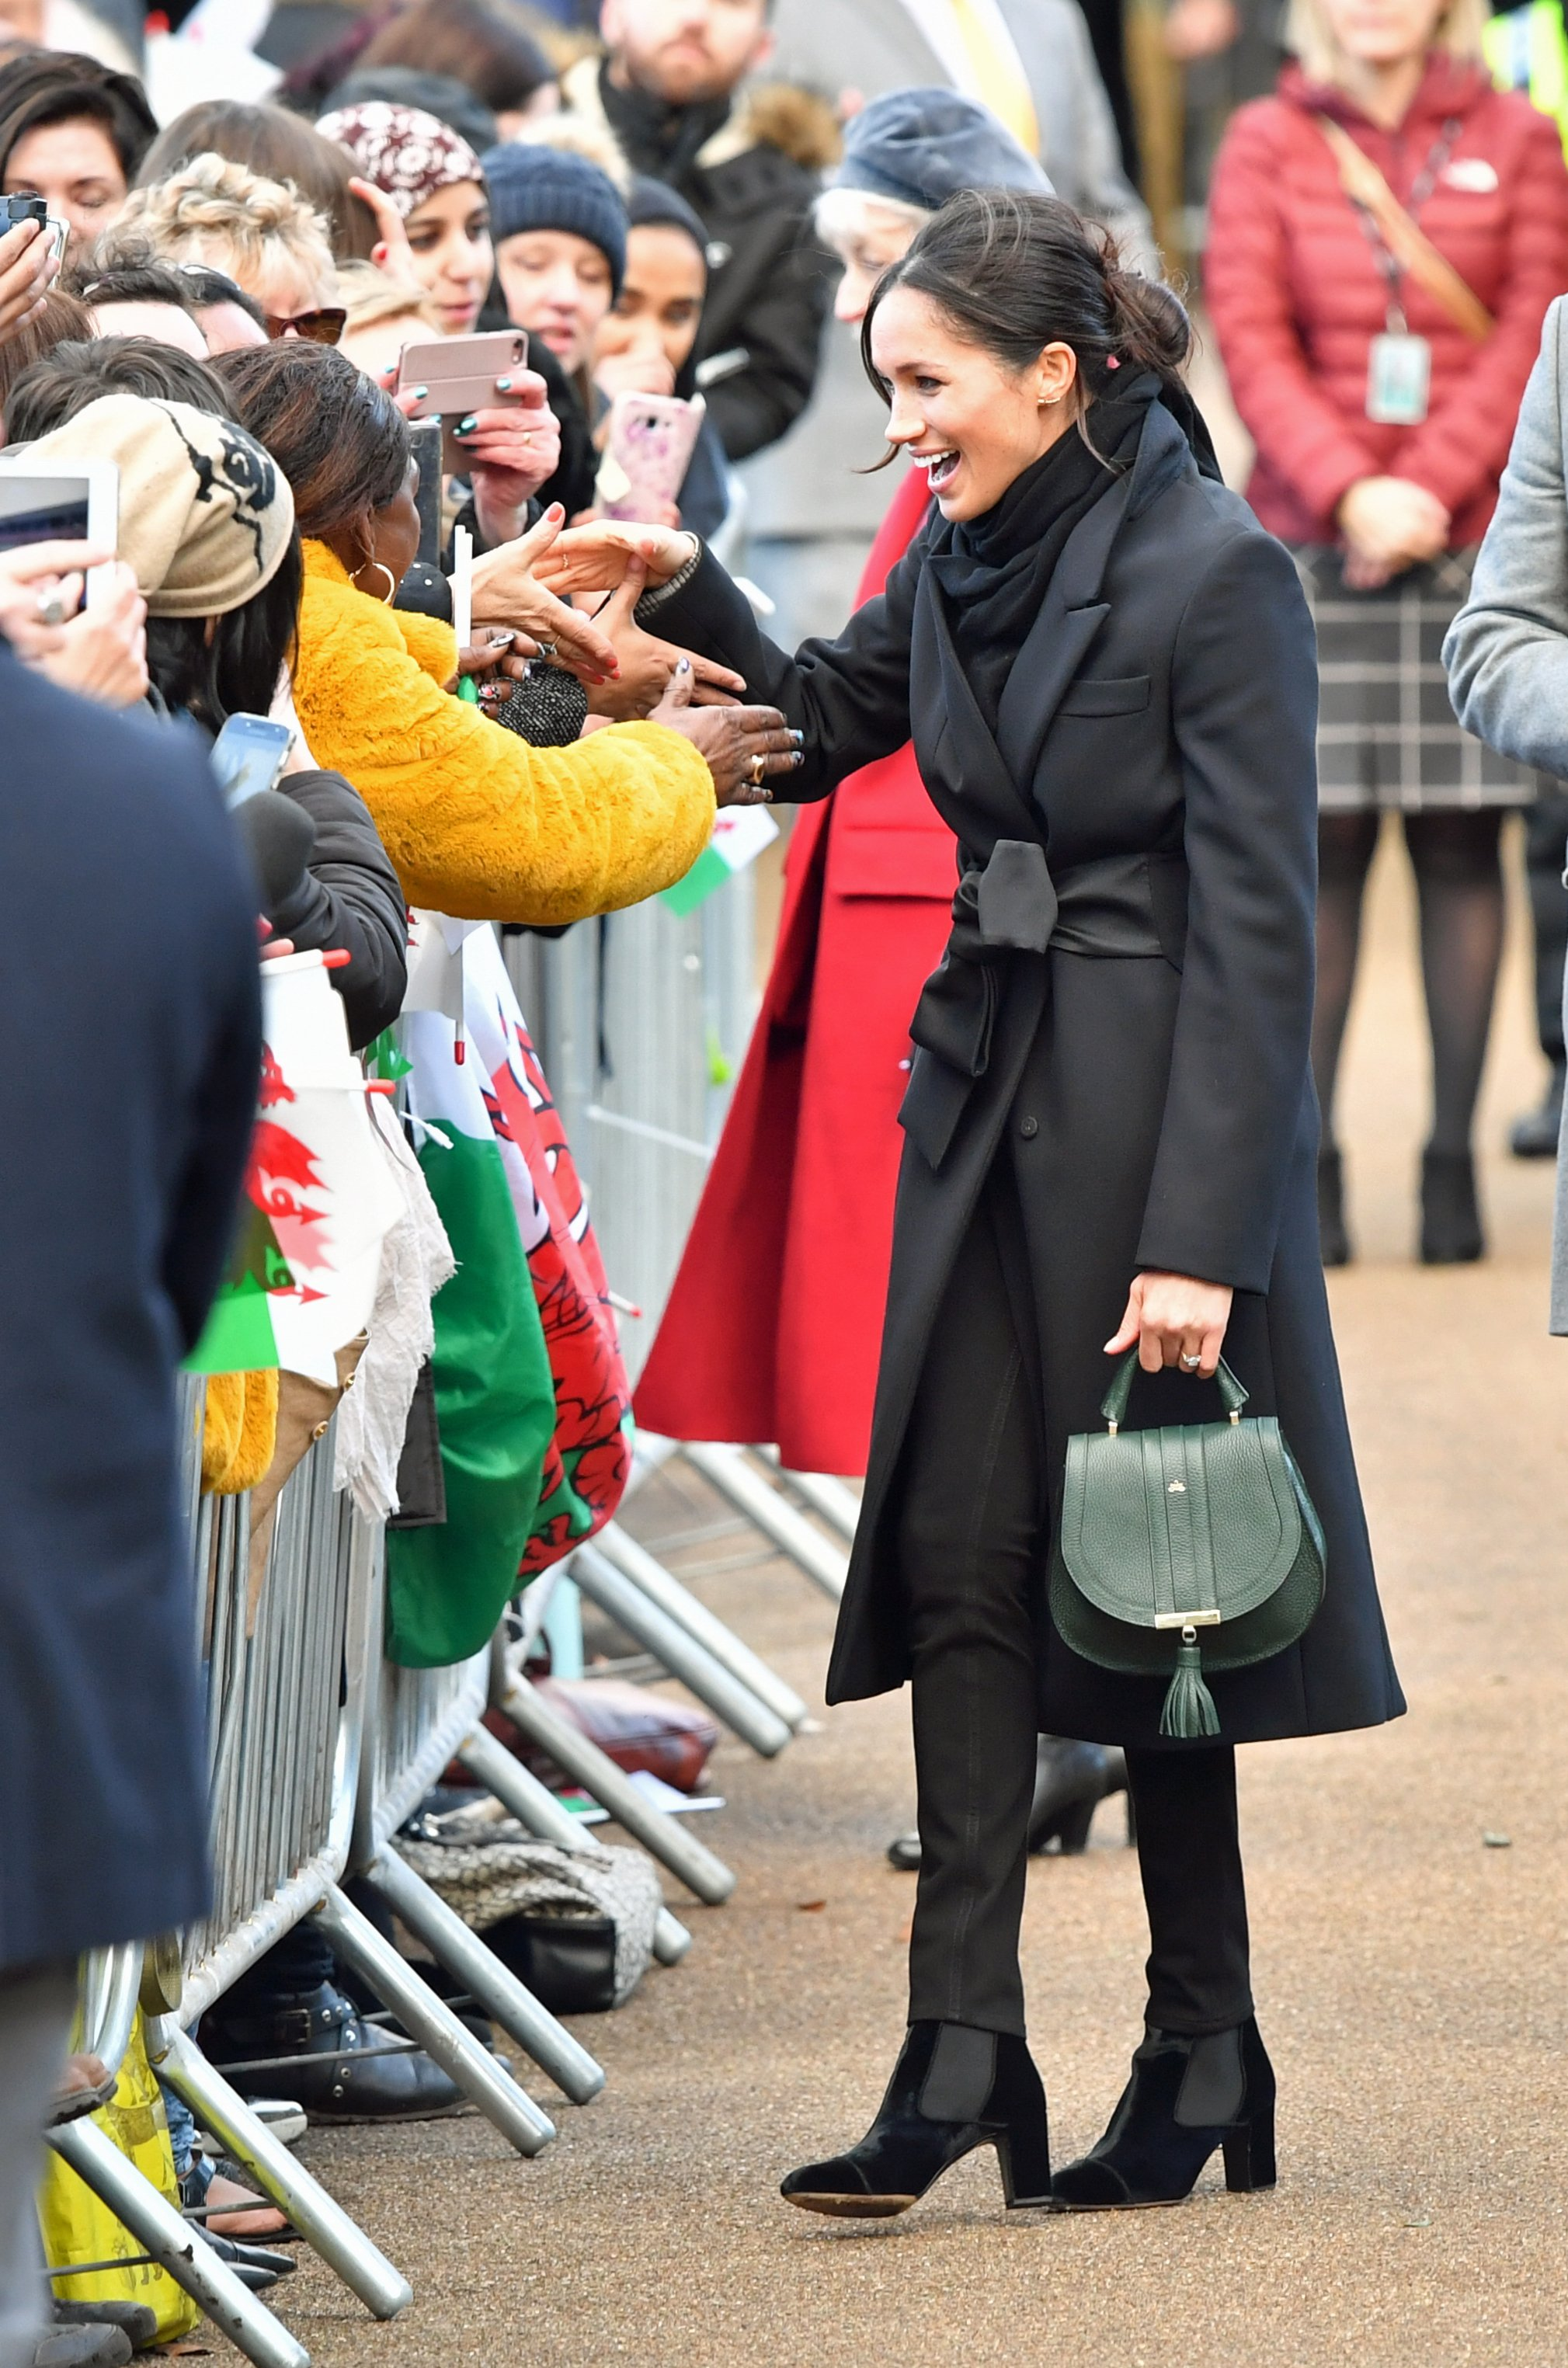 Cardiff. Meghan Markle meets the crowds during a visit to Cardiff Castle.  Photo by Ben Birchall / Nunn Rota/insight media Distributed by nunnsyndication.com, Image: 360581070, License: Rights-managed, Restrictions: , Model Release: no, Credit line: Profimedia, Insight Media